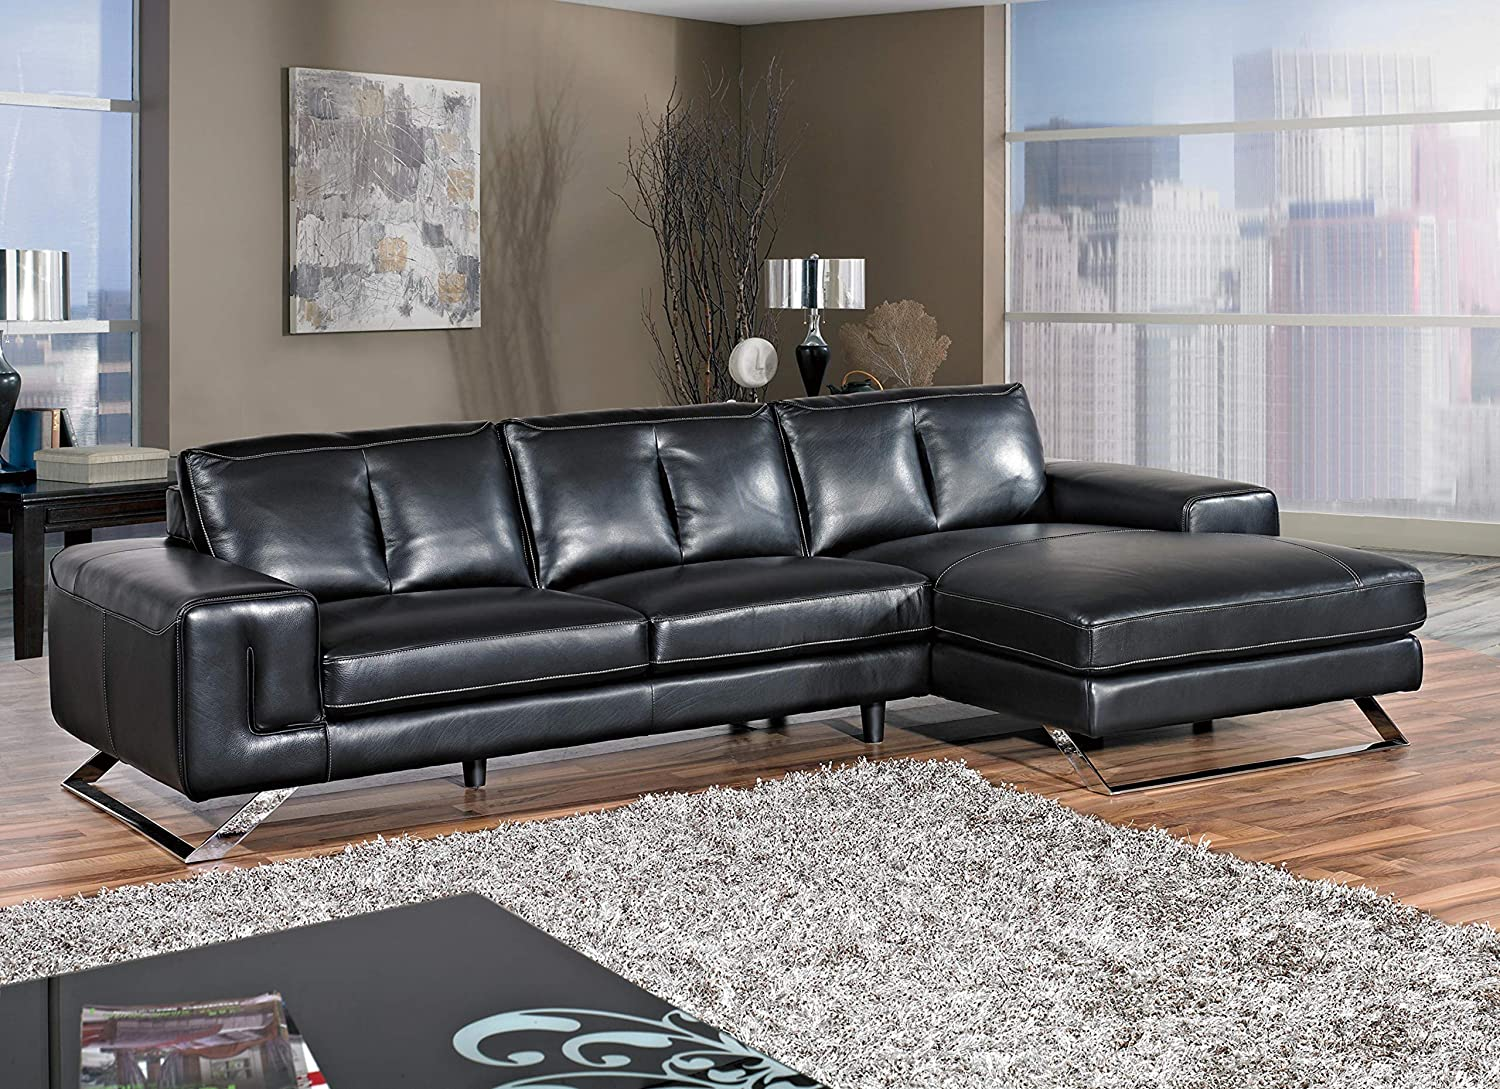 Incredible Cortesi Home Contemporary Manhattan Genuine Leather Sectional Sofa With Right Facing Chaise Lounge Black 116 Wide Pdpeps Interior Chair Design Pdpepsorg